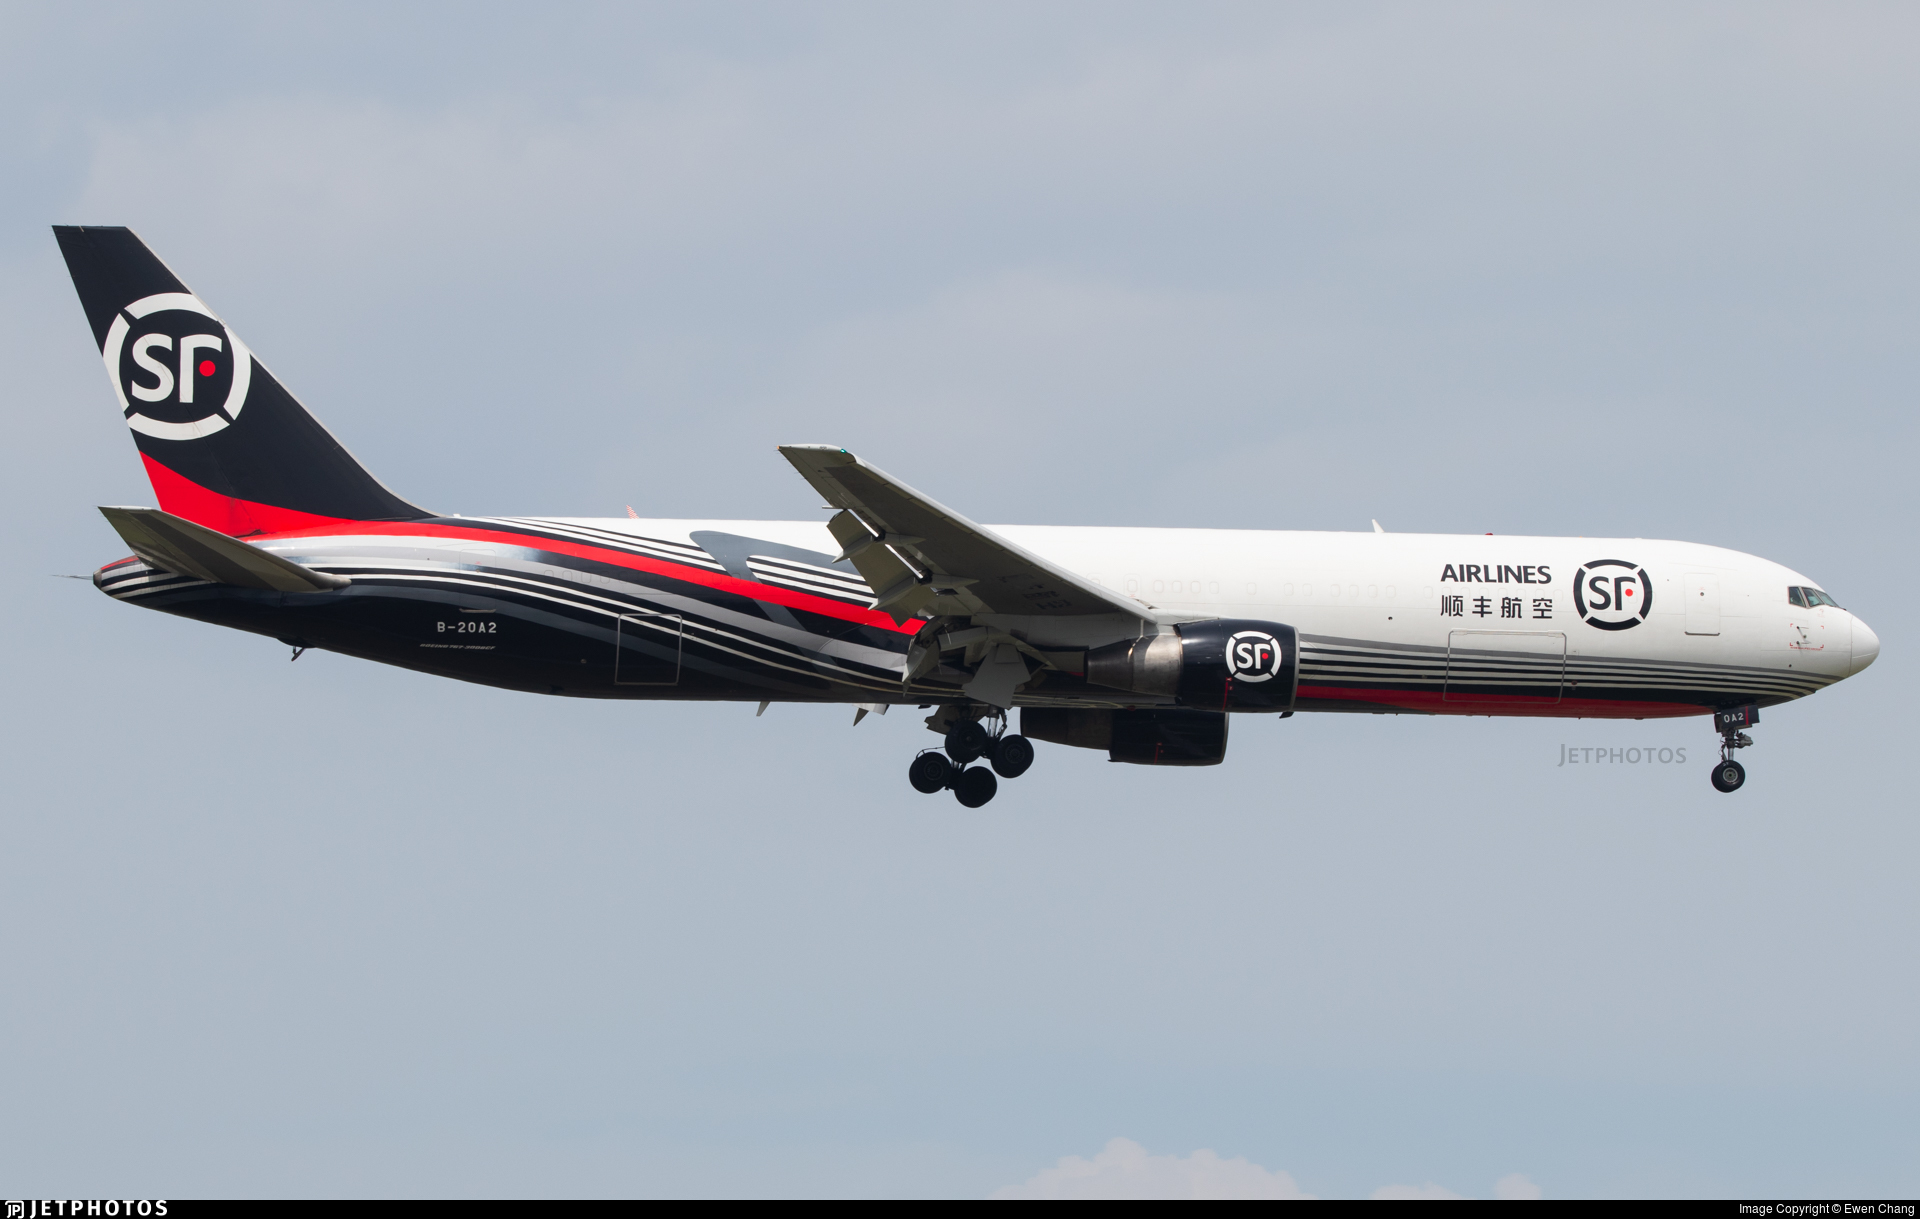 B-20A2 - Boeing 767-36D(ER)(BCF) - SF Airlines